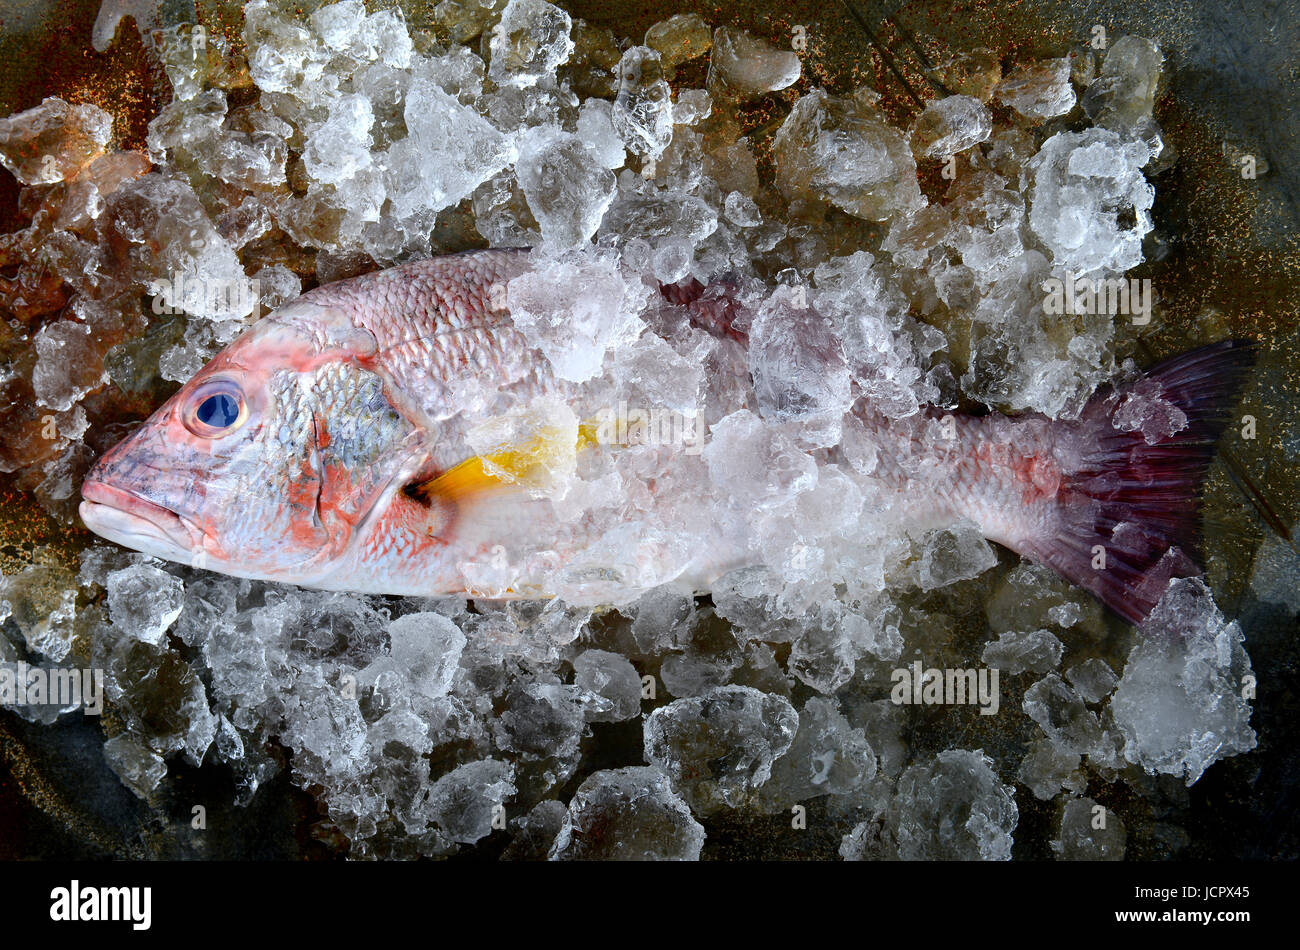 Fresh red snapper fish from fishery market frozen in ice piece. Stock Photo